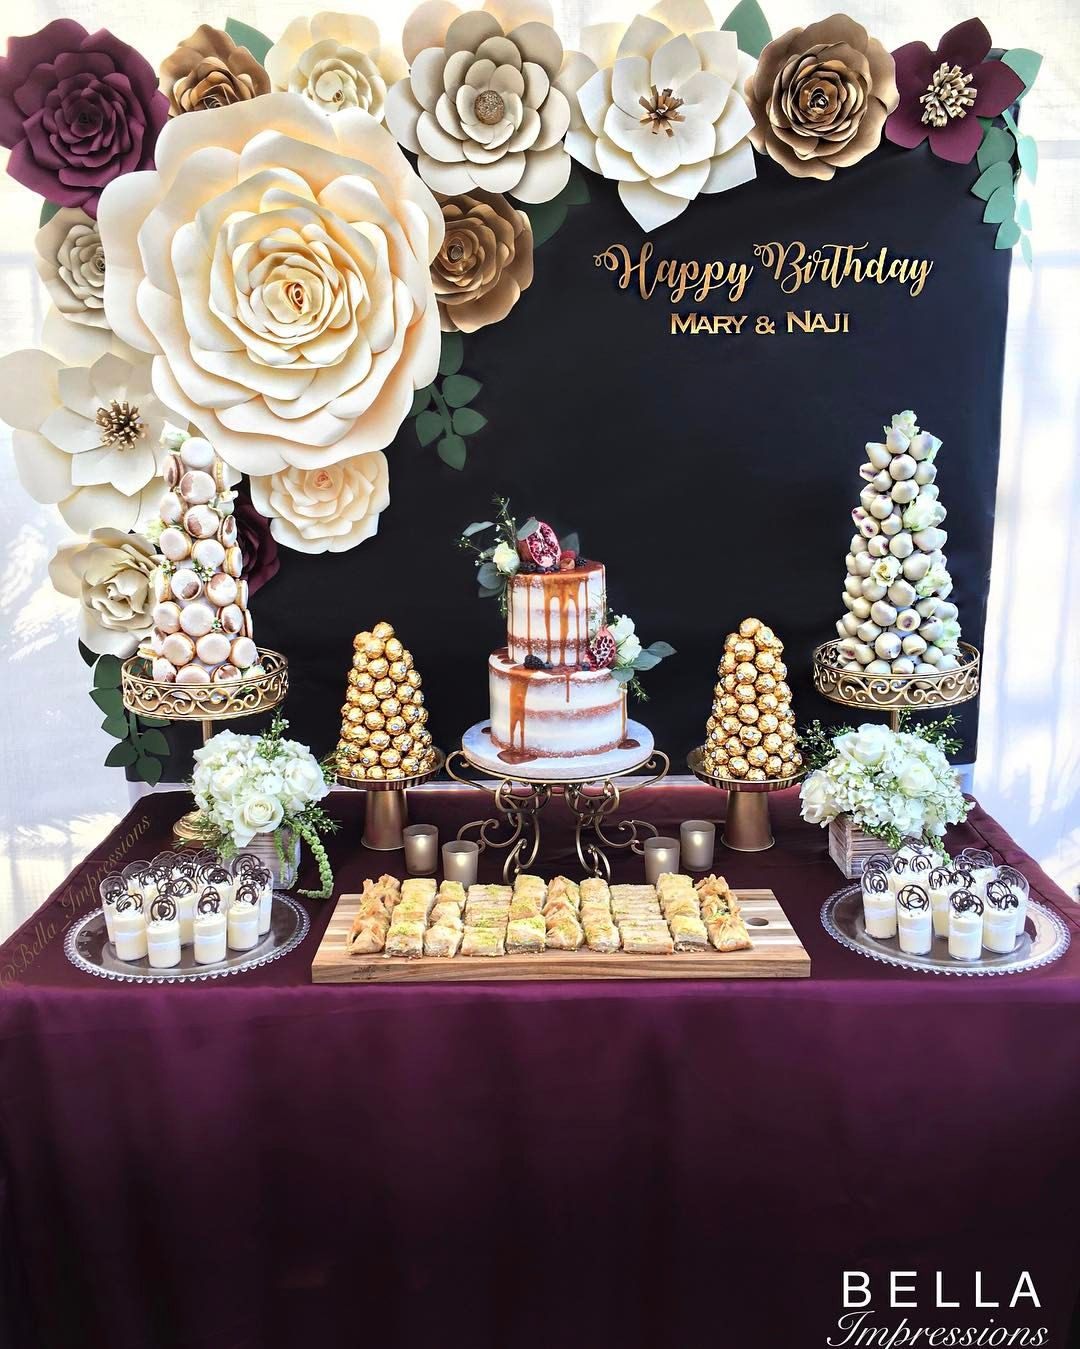 From kara s party ideas rustic dessert table display designed by - 3 505 Followers 276 Following 115 Posts See Instagram Photos And Videos From Invitations Diy 30th Birthday Decorationsbaptism Table